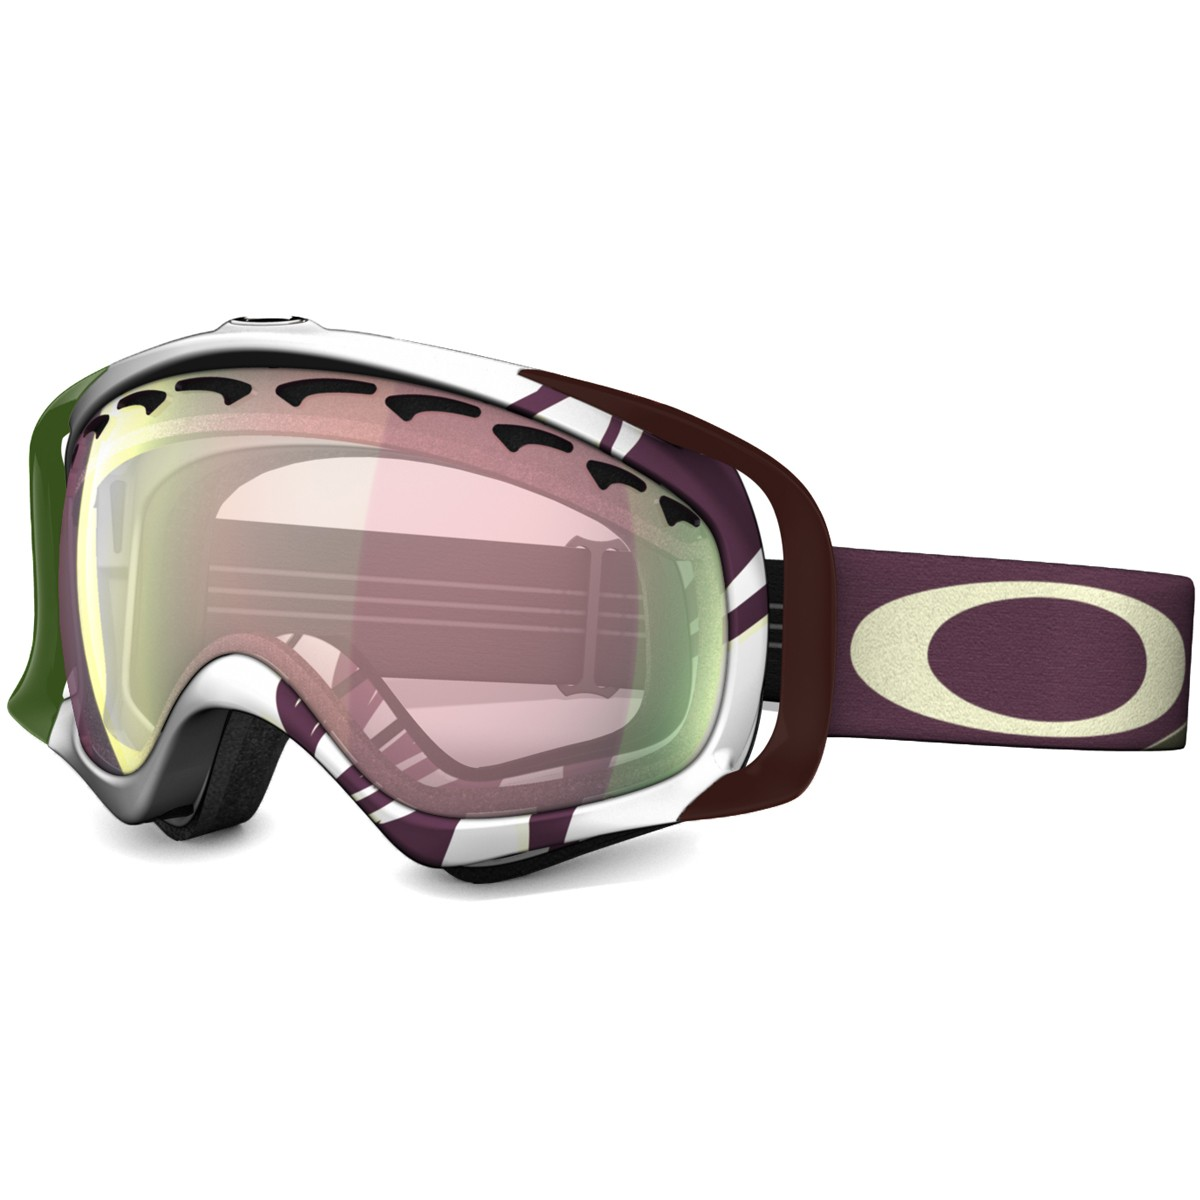 cheap youth oakley sunglasses ue7w  Oakley Crowbar Pink Iridium